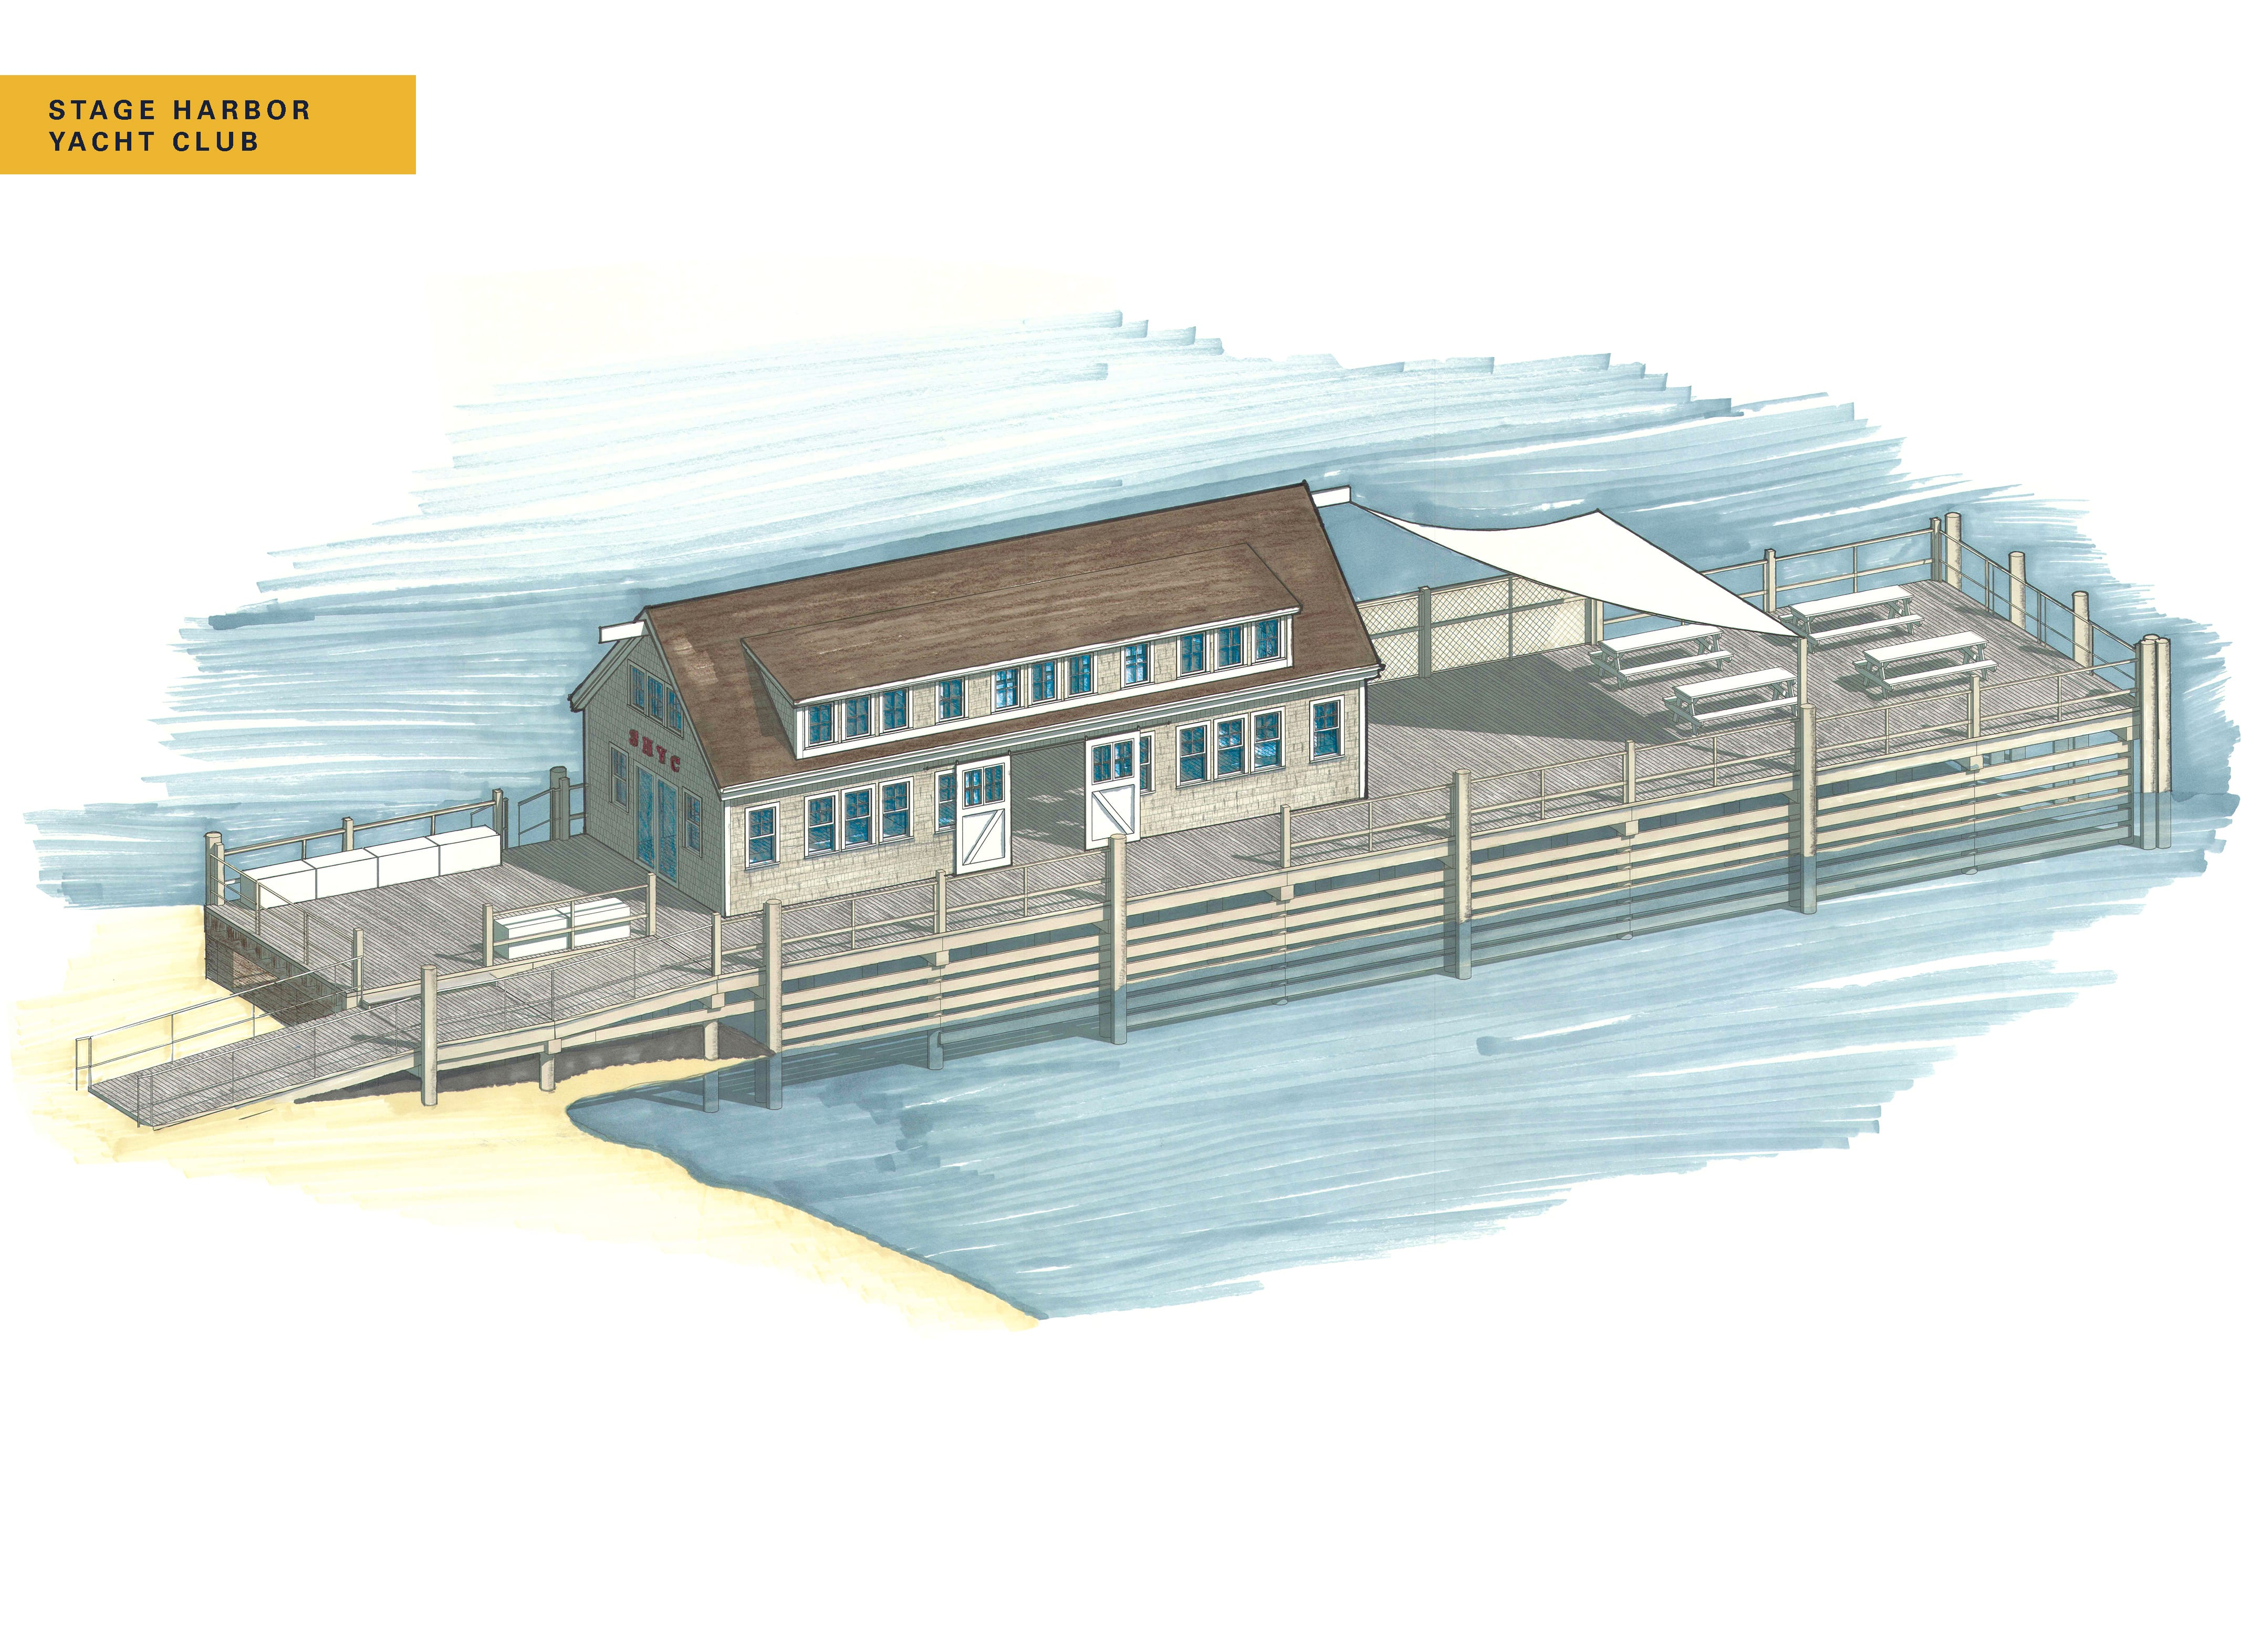 Stage Harbor Yacht Club Hero Rendering with name